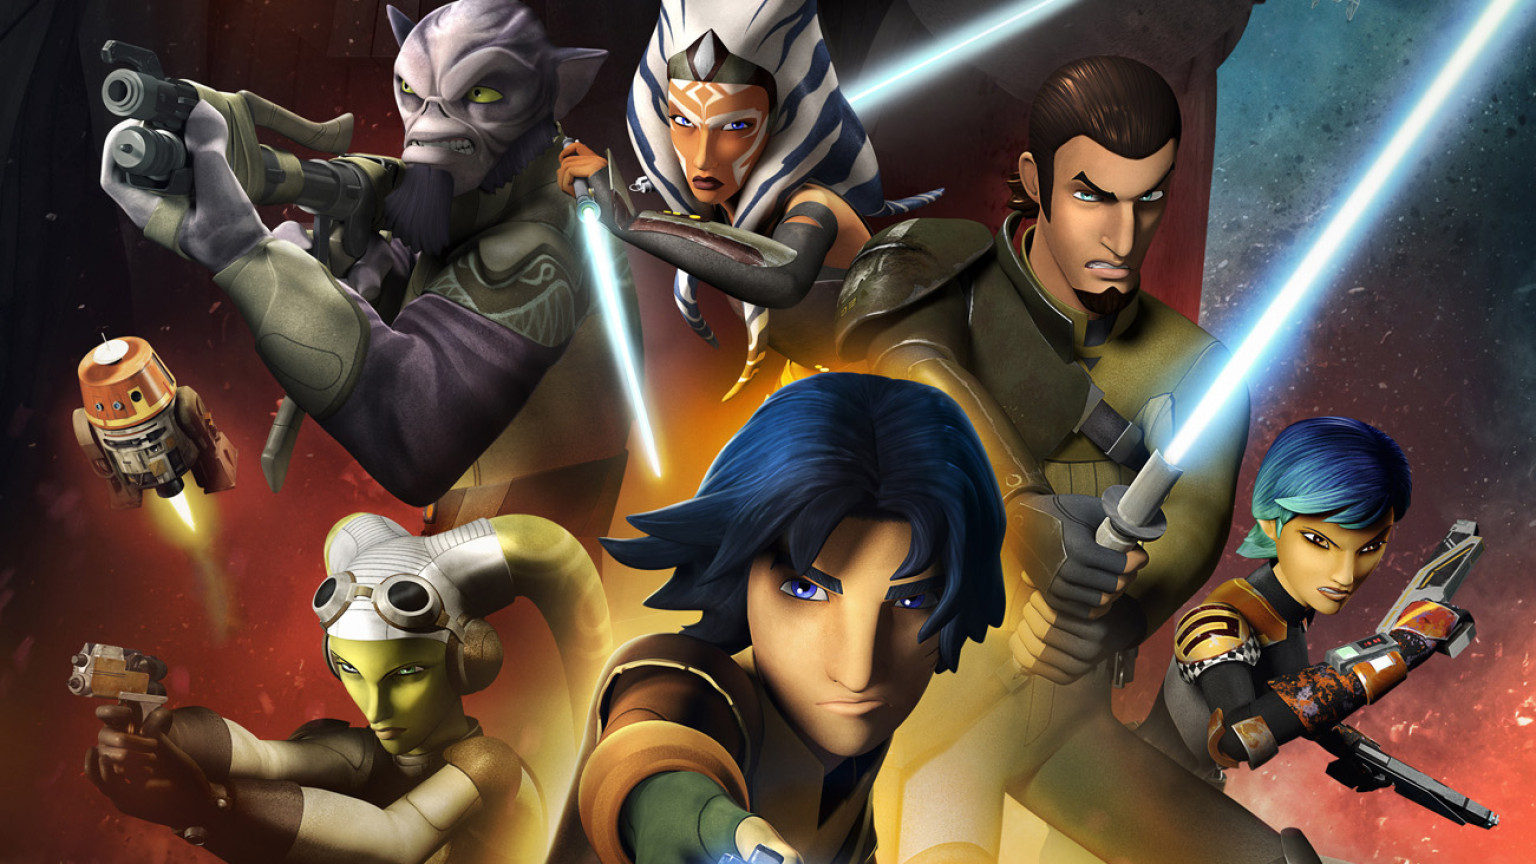 star wars rebels season two fan art contest starwars com